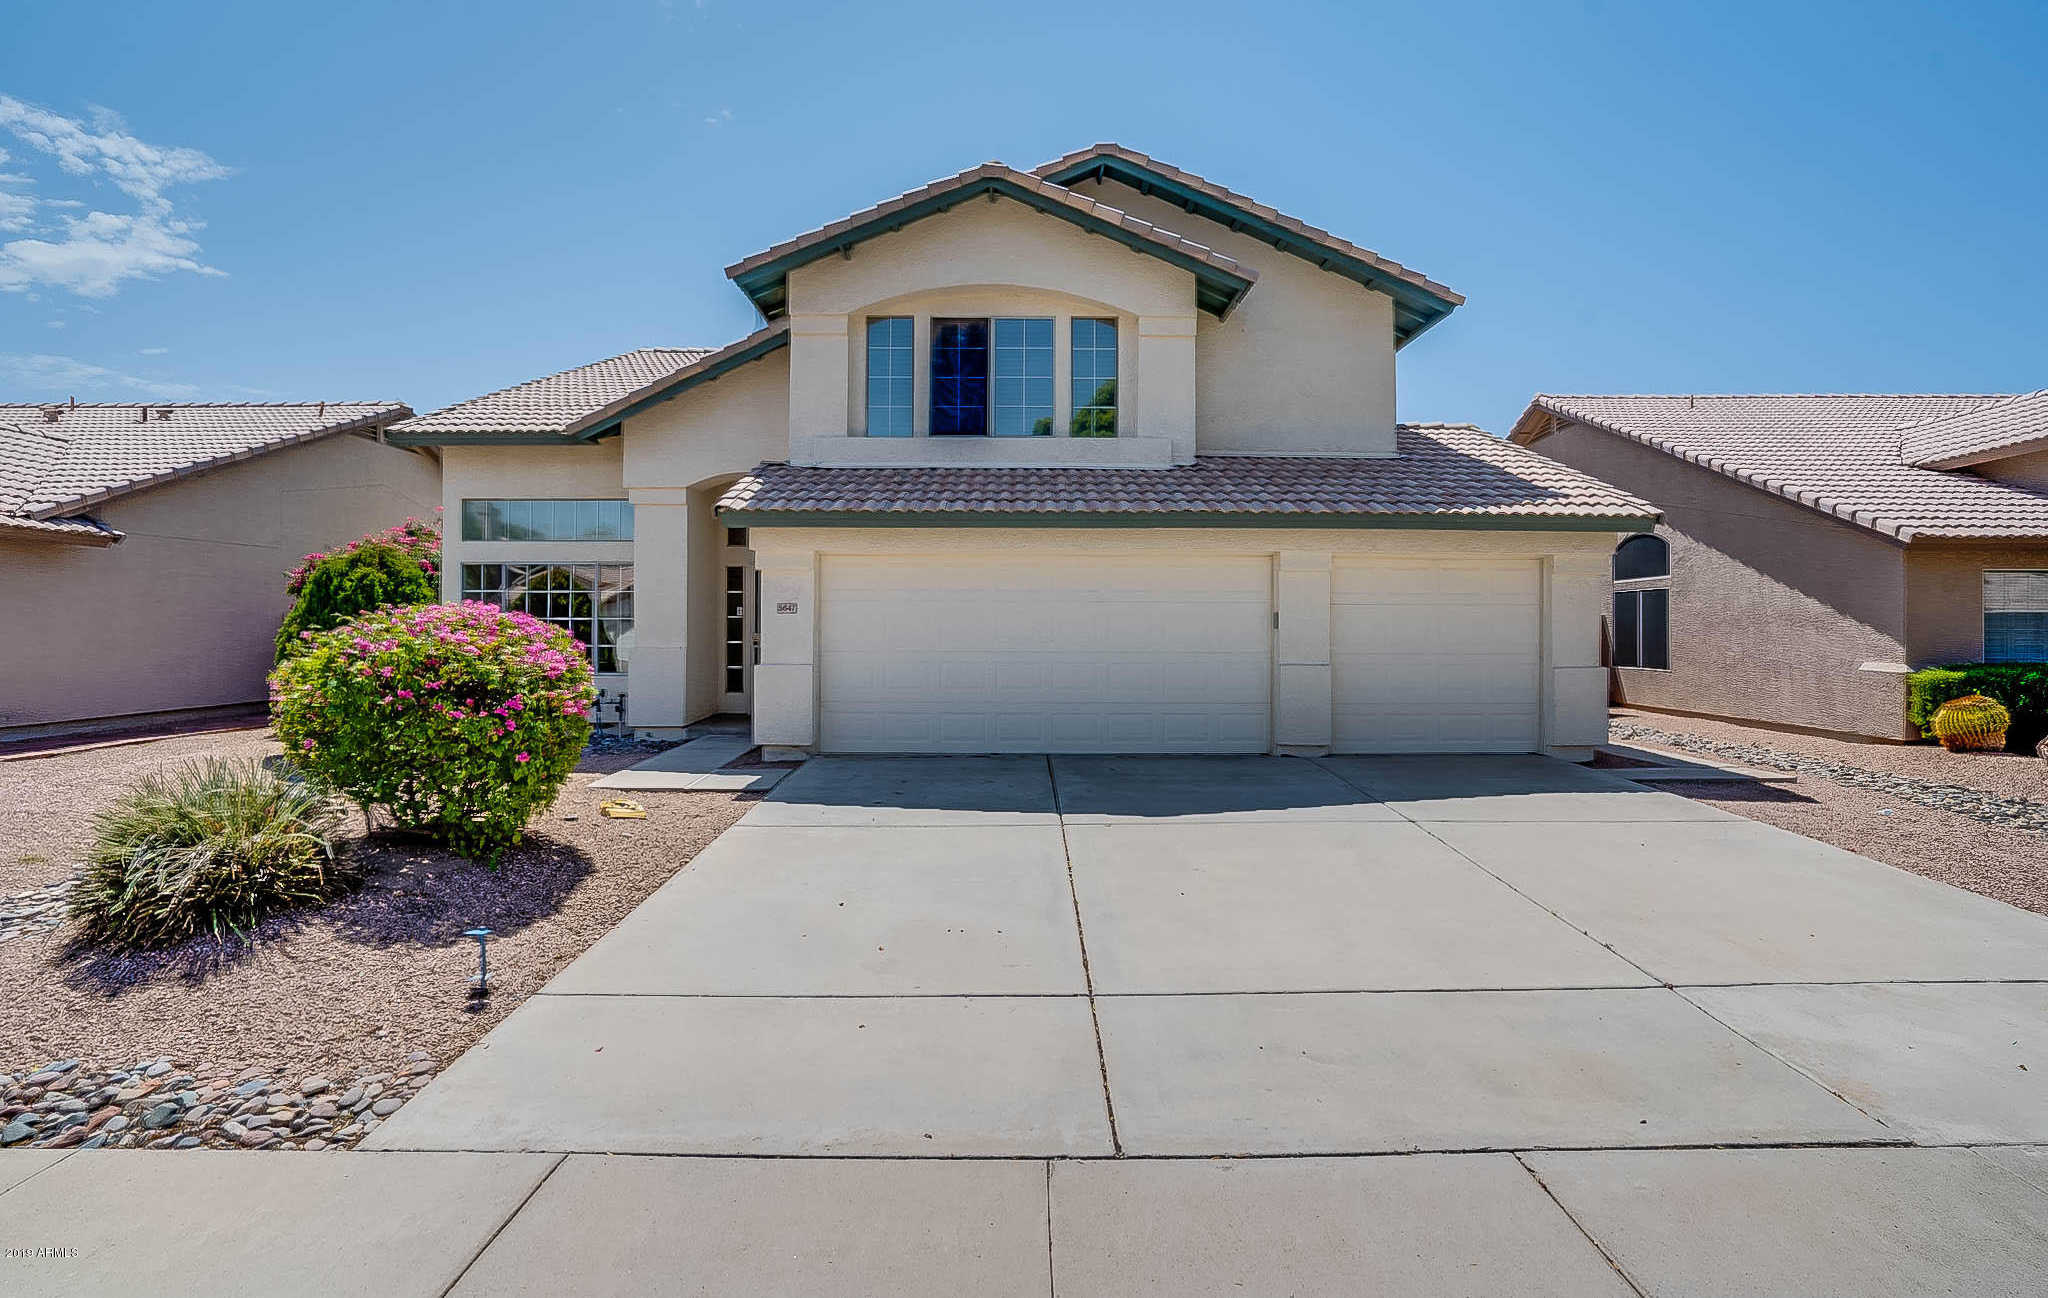 $350,000 - 3Br/3Ba - Home for Sale in Fulton Homes At Arrowhead Ranch Unit 2, Glendale